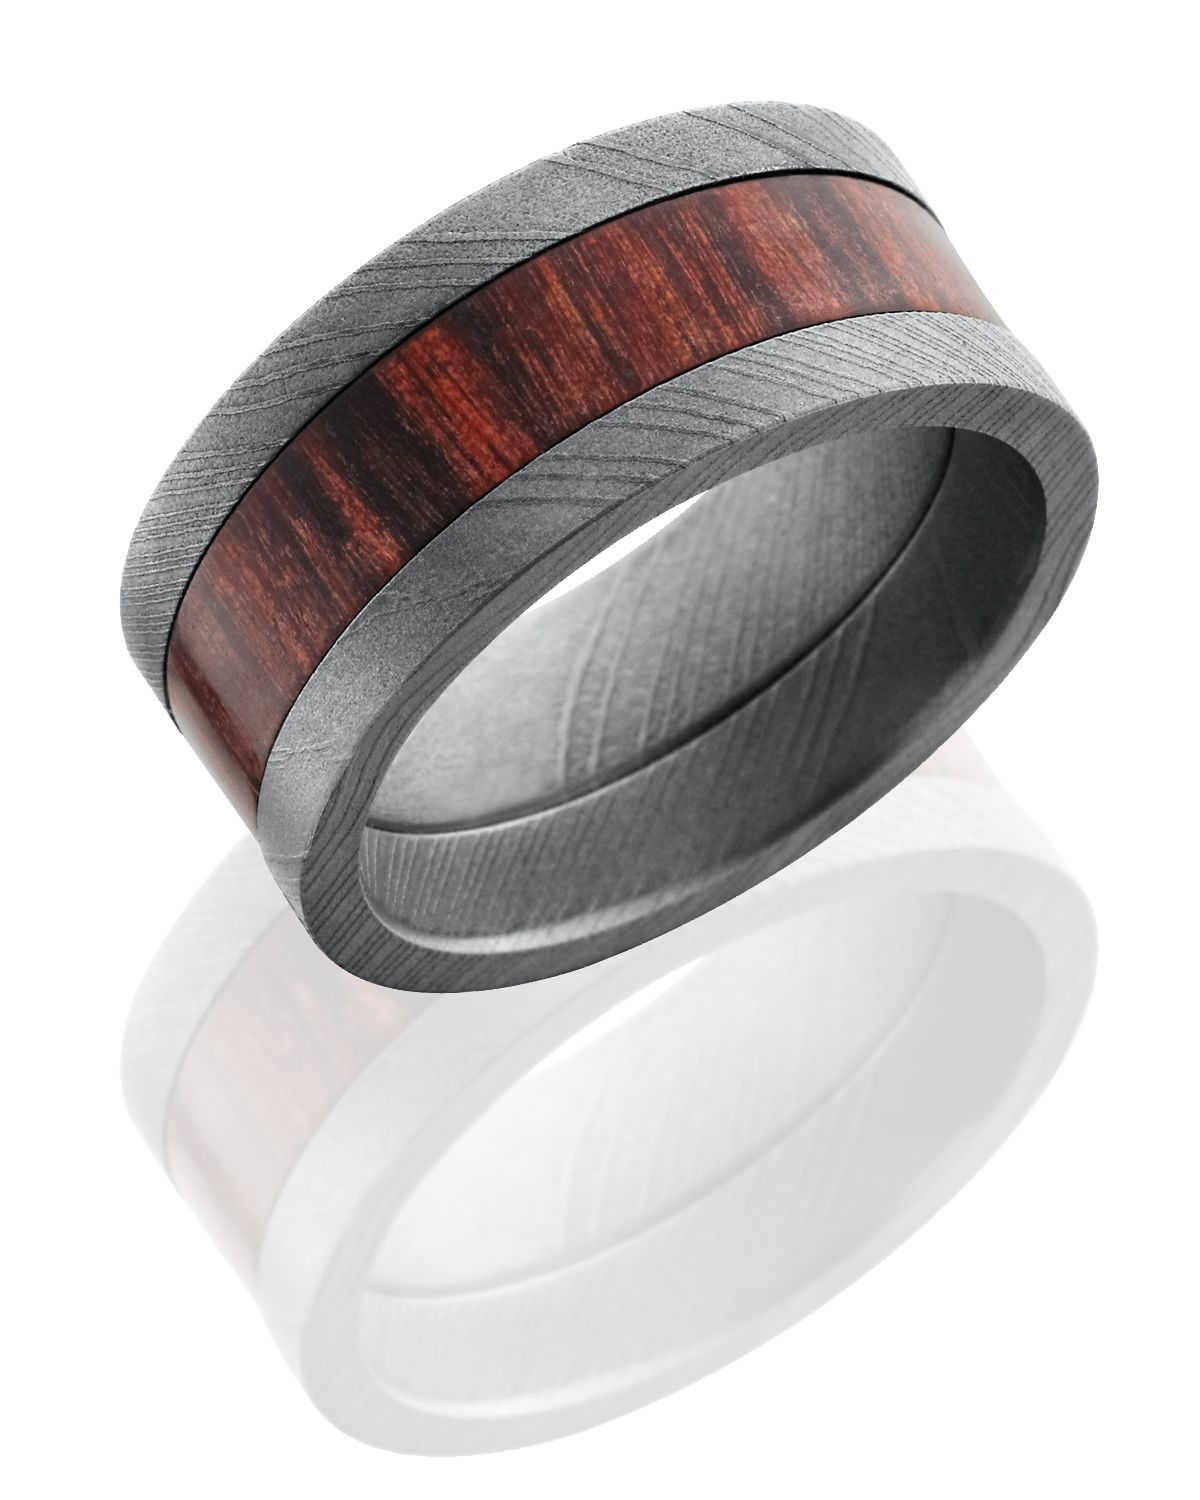 damascus steel wedding bands damascus wedding band 17 Best Images About Beauty Of Damascus On Pinterest Damascus Steel Knife Making And Straight Razor damascus steel ring wedding